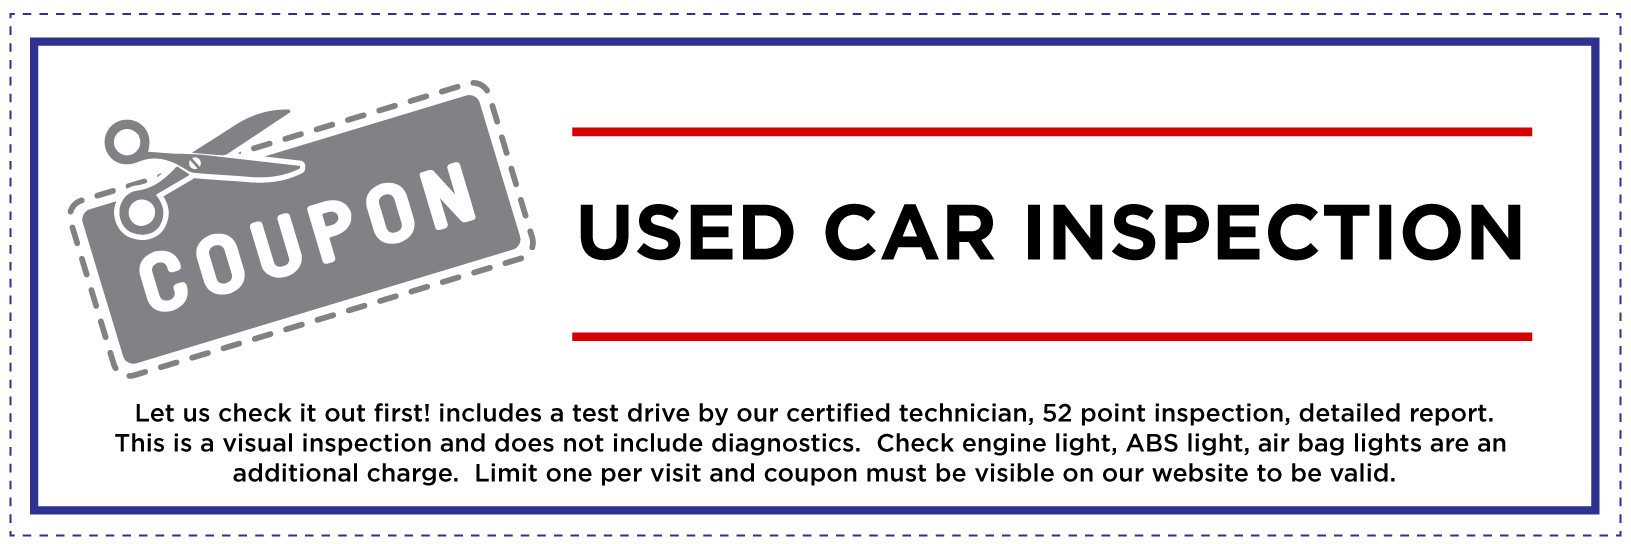 Used Car Inspection Coupon for Website